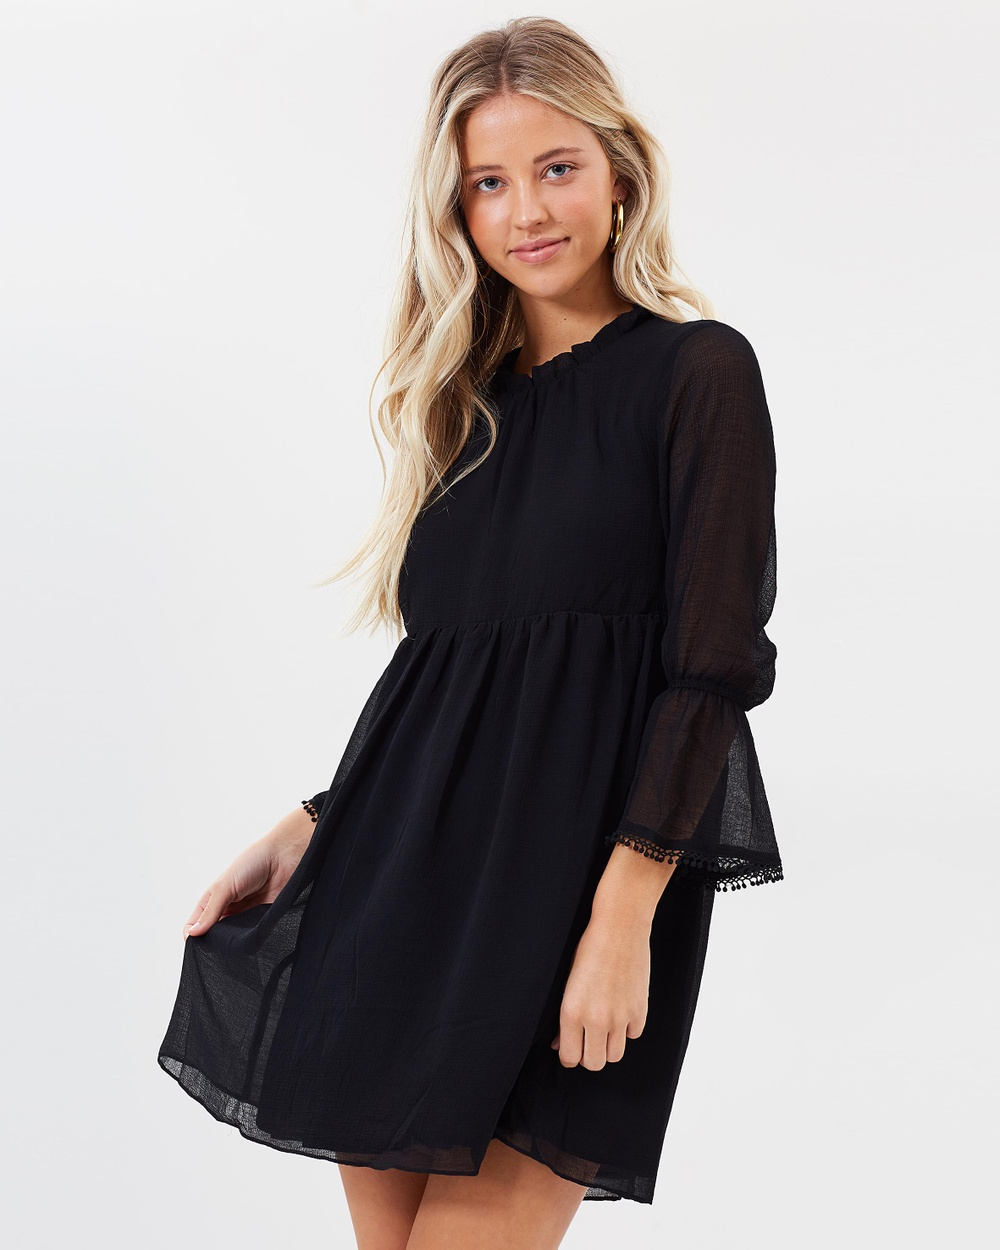 Dazie Azilane Crinkle Chiffon Dress Dresses Black Azilane Crinkle Chiffon Dress